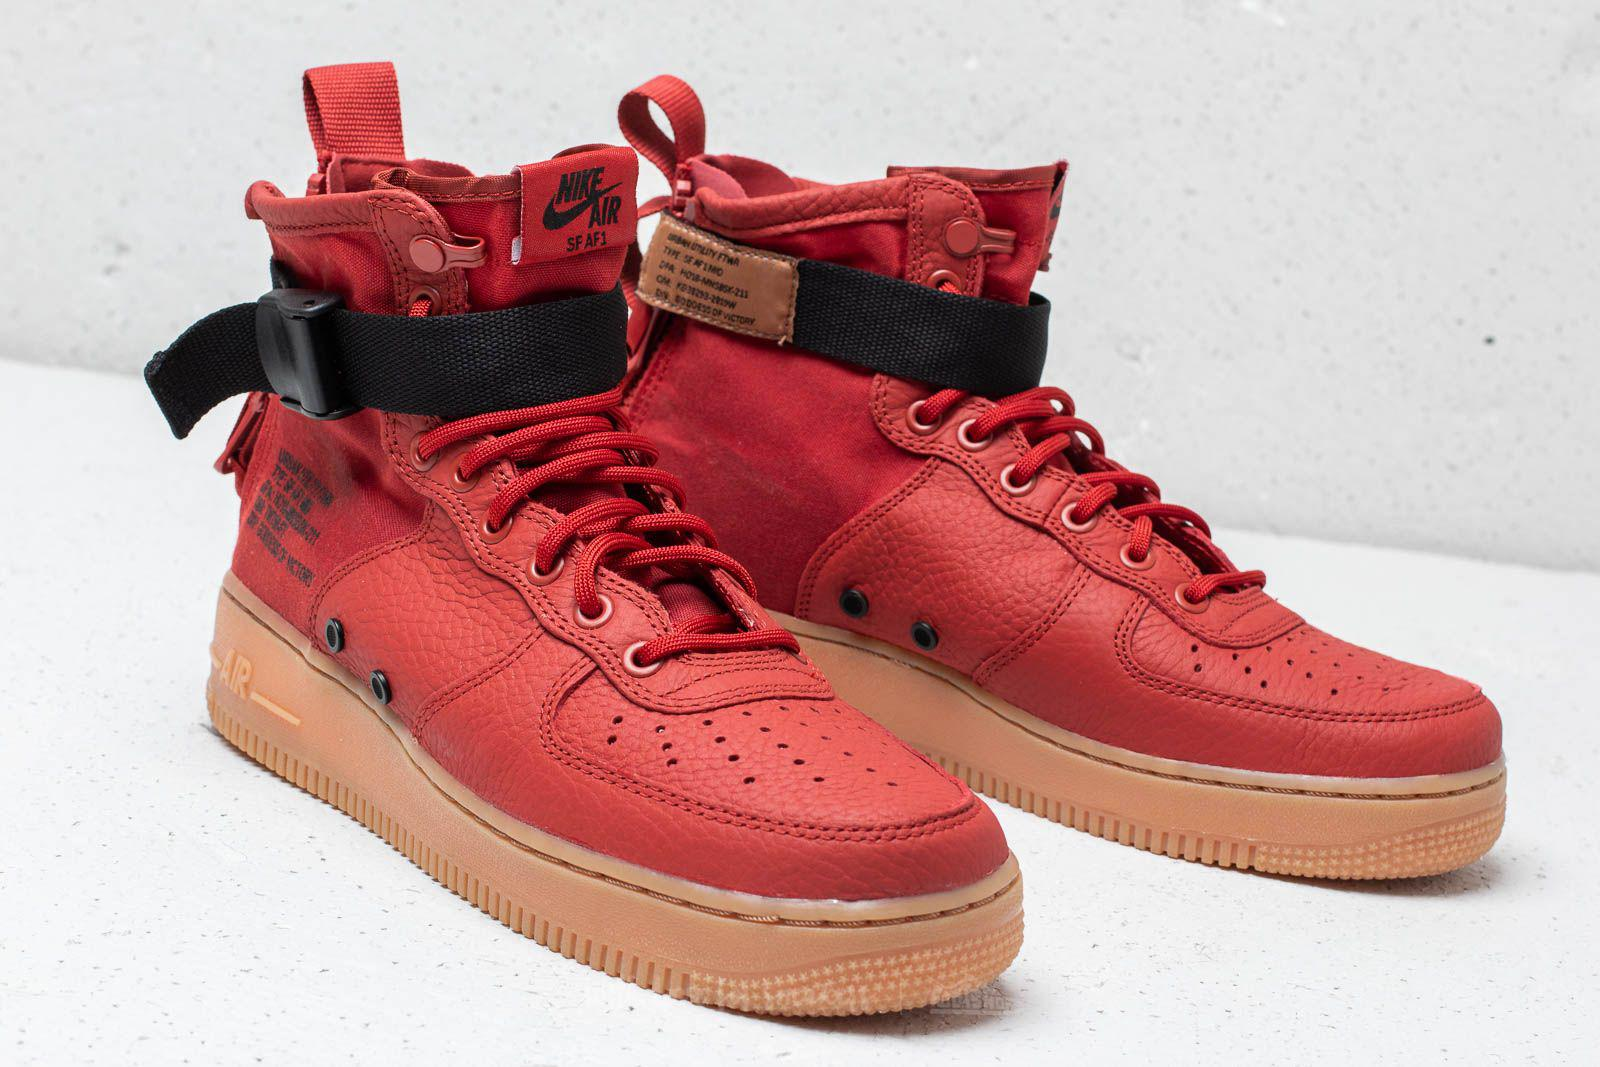 official photos 97a41 a3304 nike sf af1 red and black